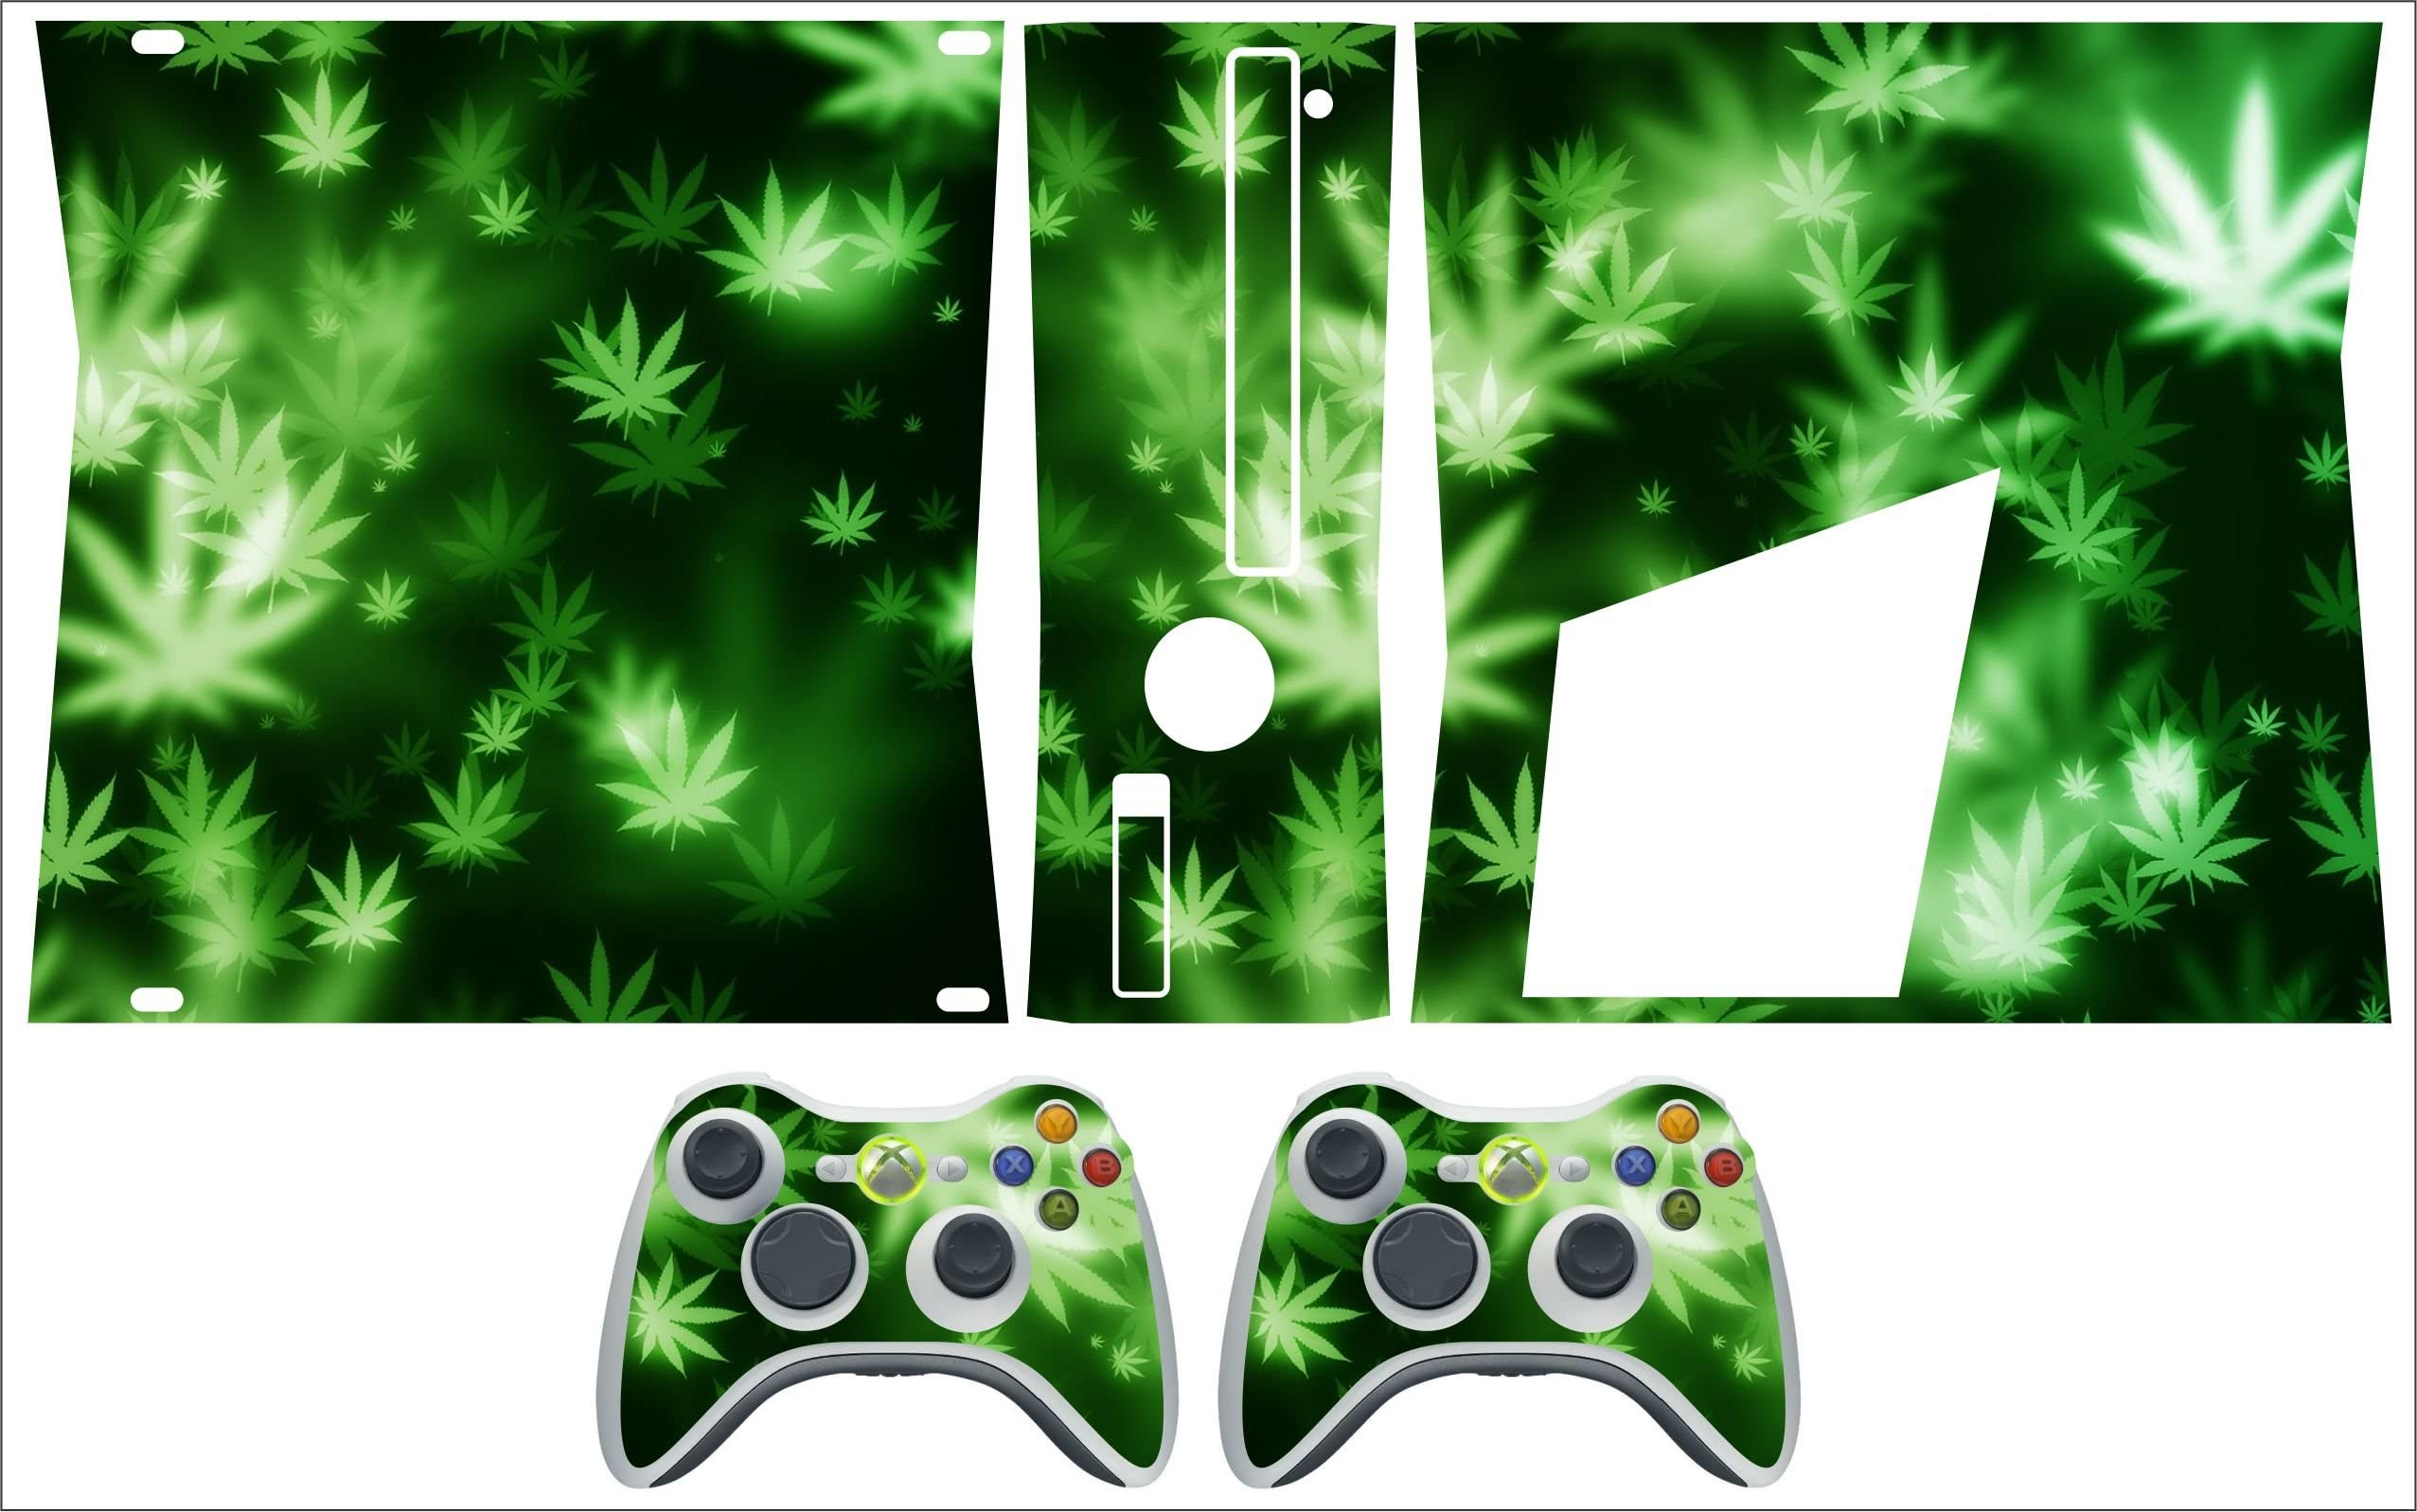 Xbox 360 faceplate & case templates free download @ pepe hiller.